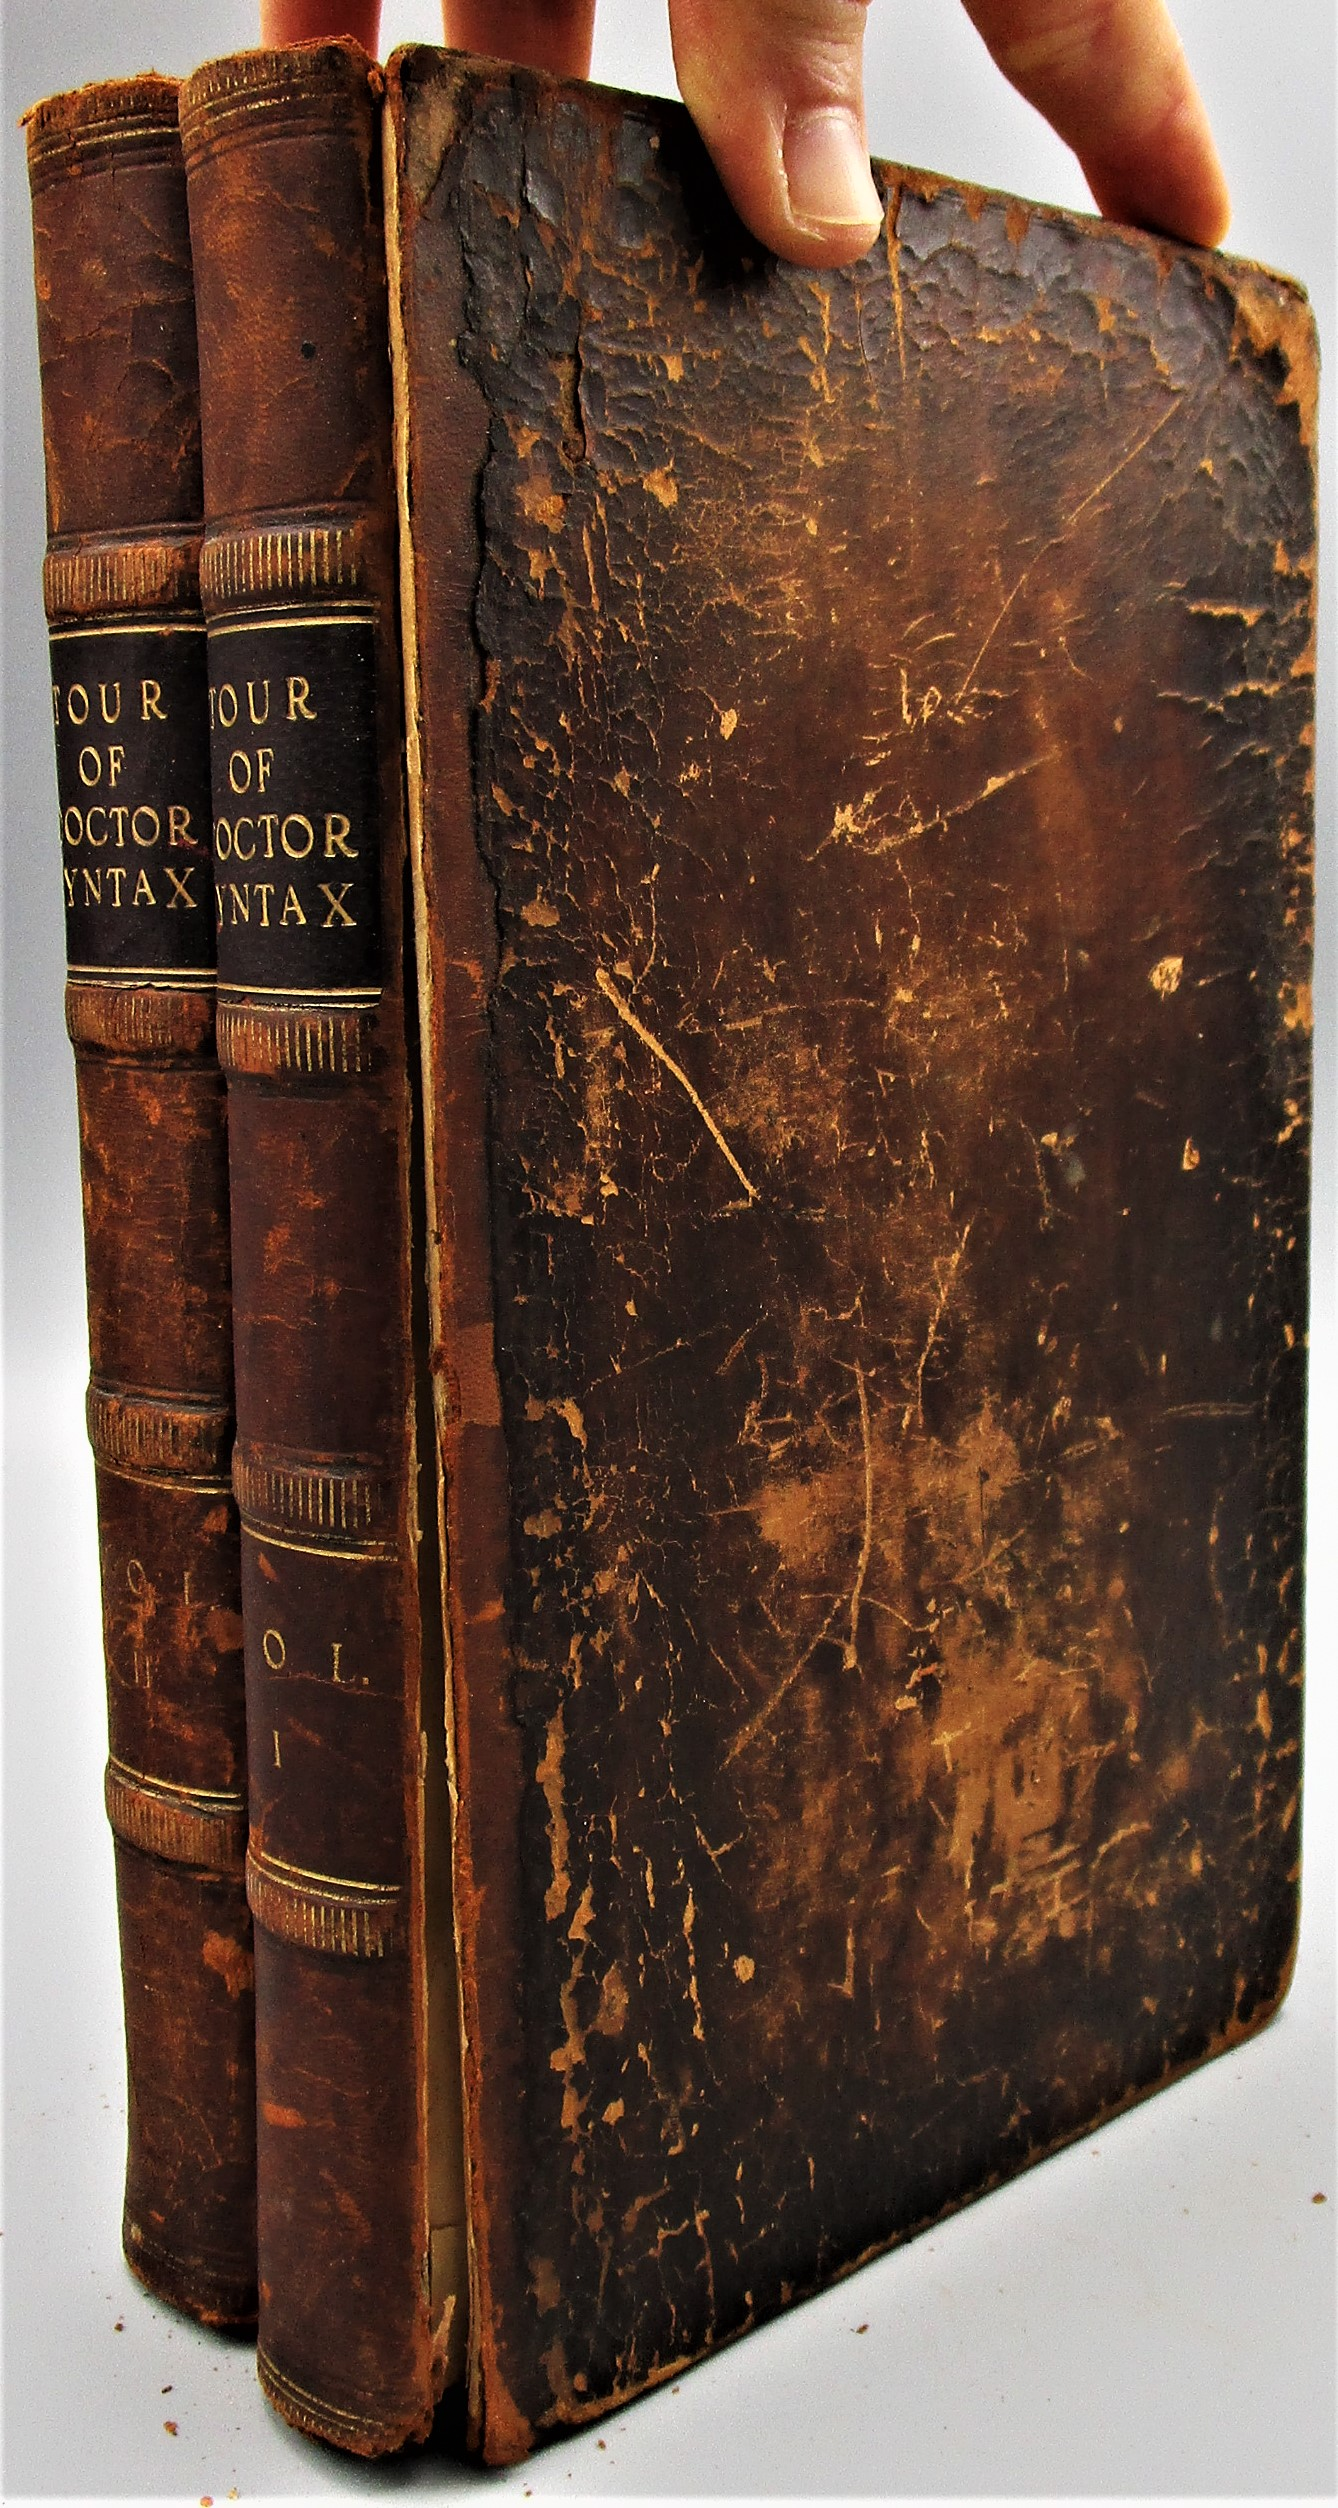 THE TOURS OF DOCTOR SYNTAX, by William Combe - 1813 [1st Ed; 2 Vols]